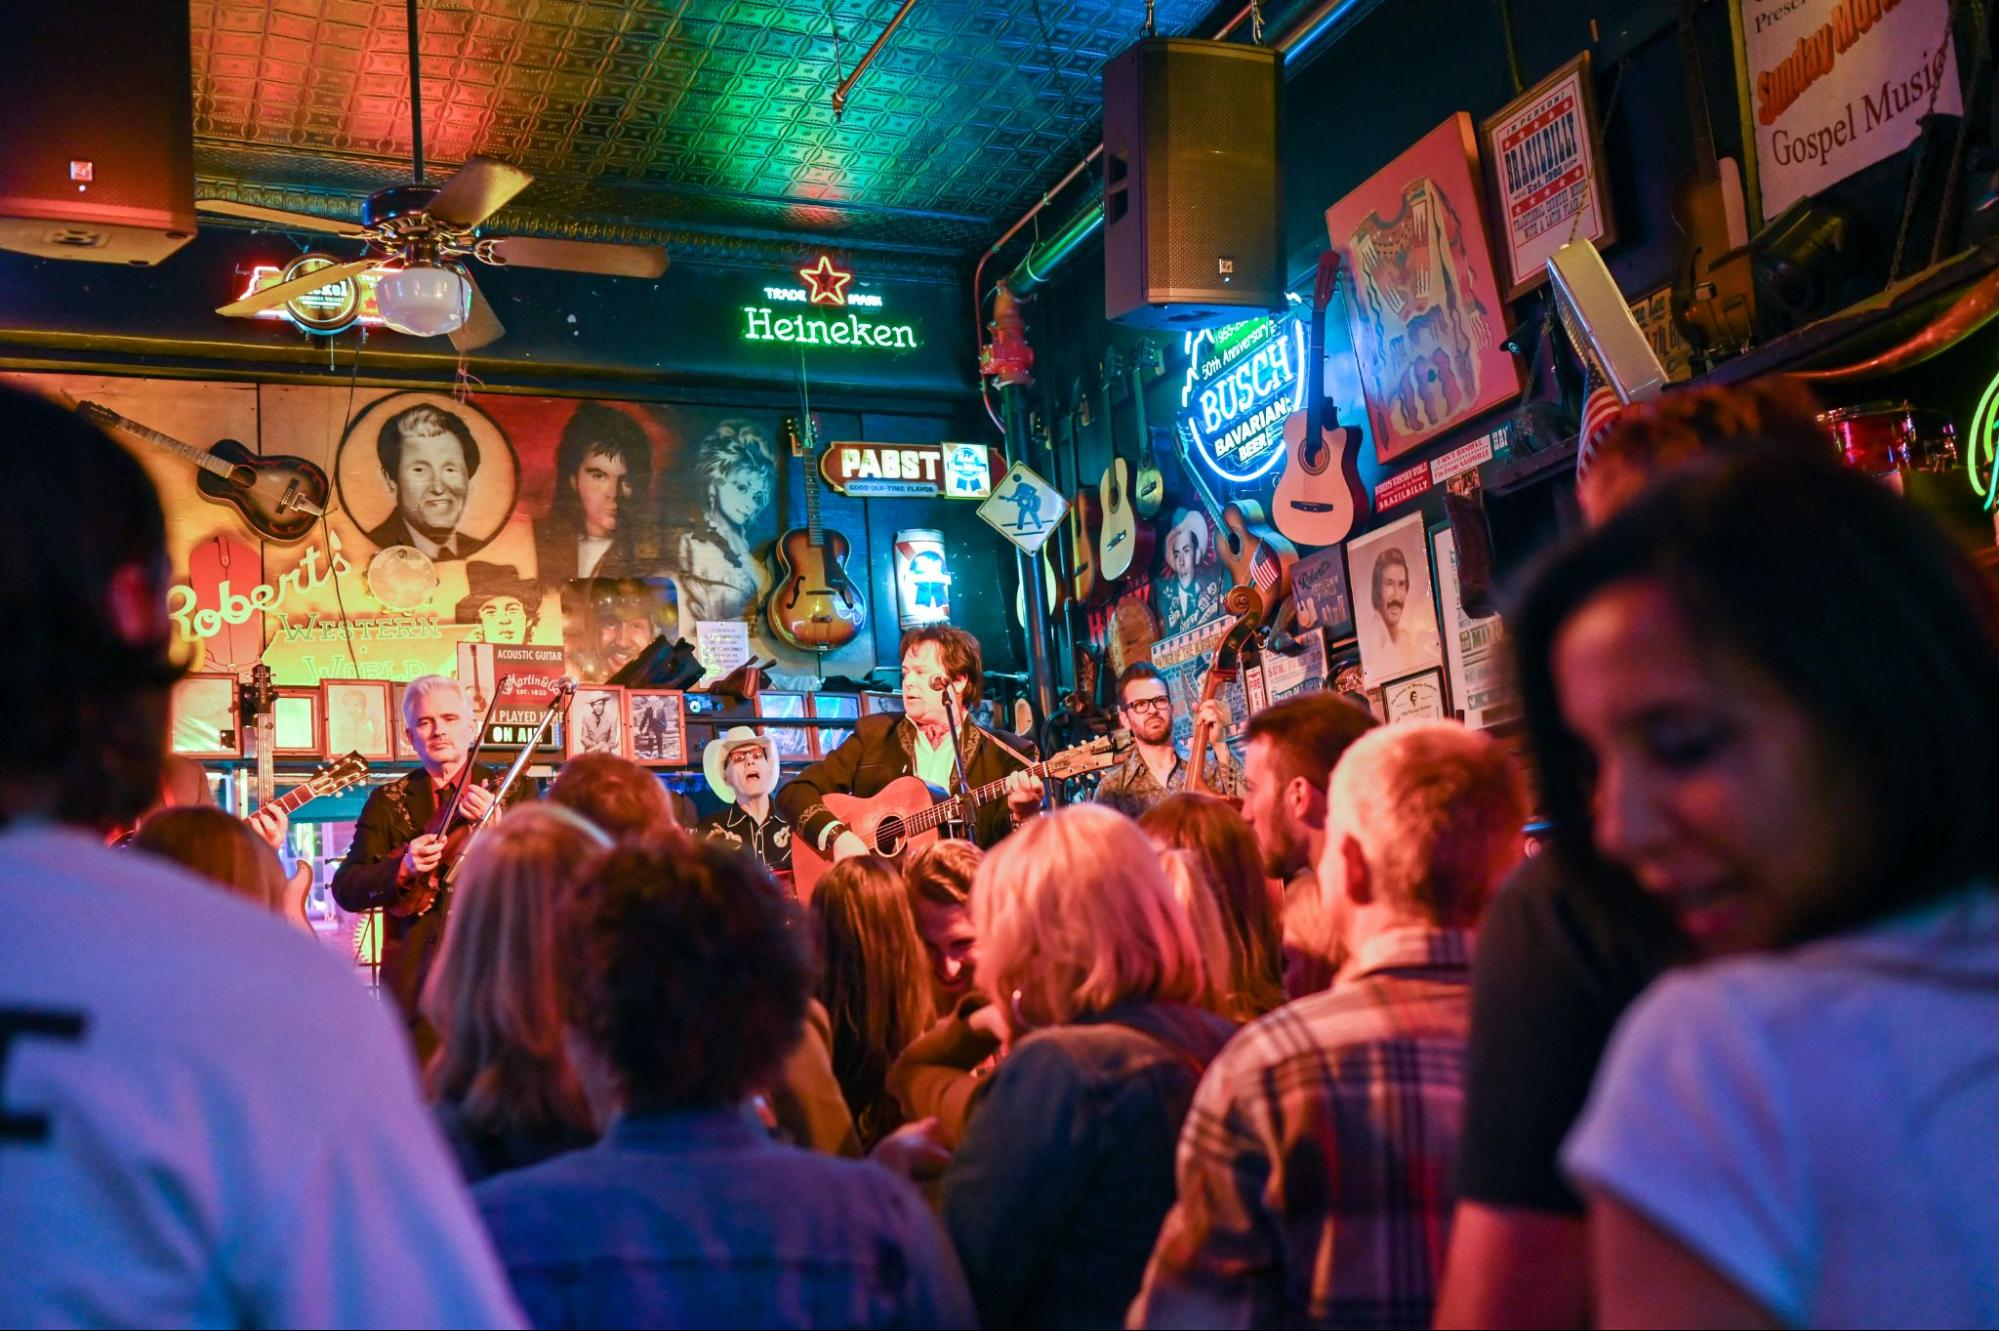 A group of people listening to a band at a country bar in Nashville, Tennessee.